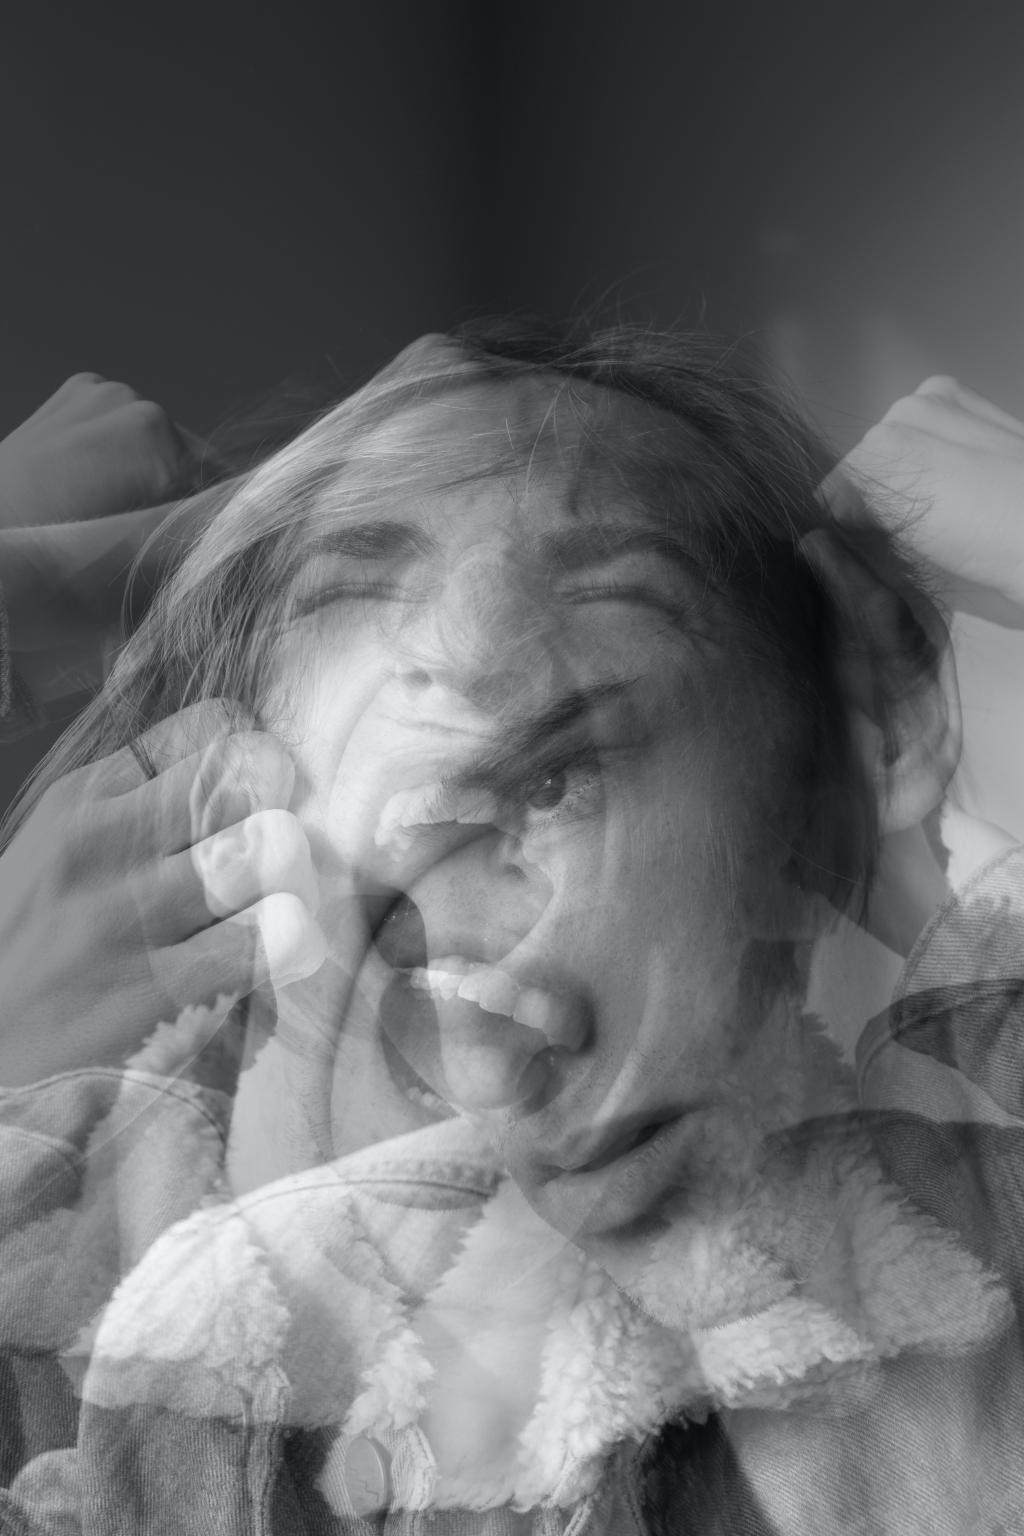 double exposed photo of a person screaming